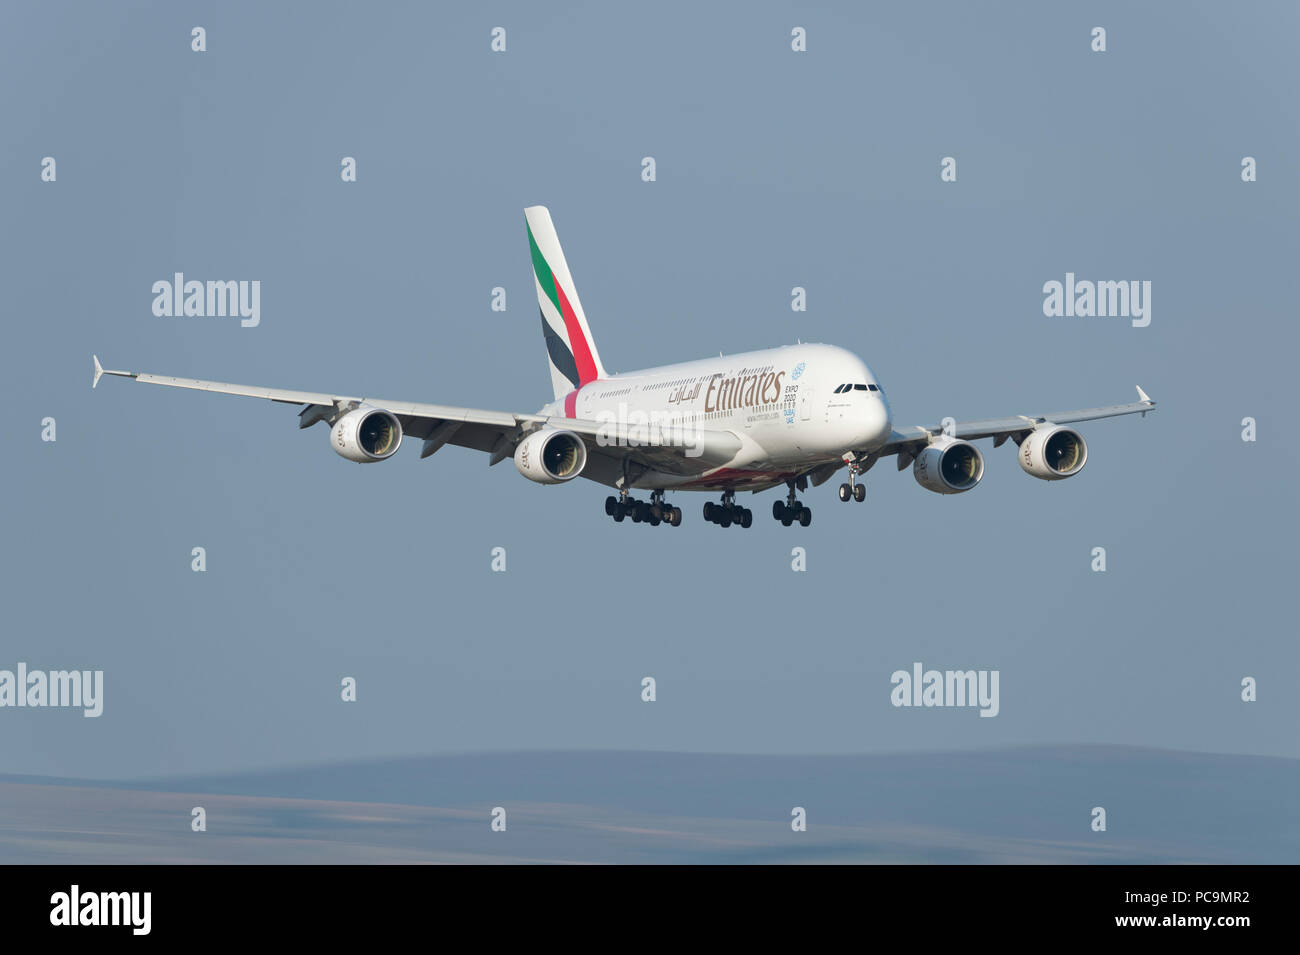 An Emirates Airbus A380-861 comes in to land at Manchester Airport, UK. - Stock Image